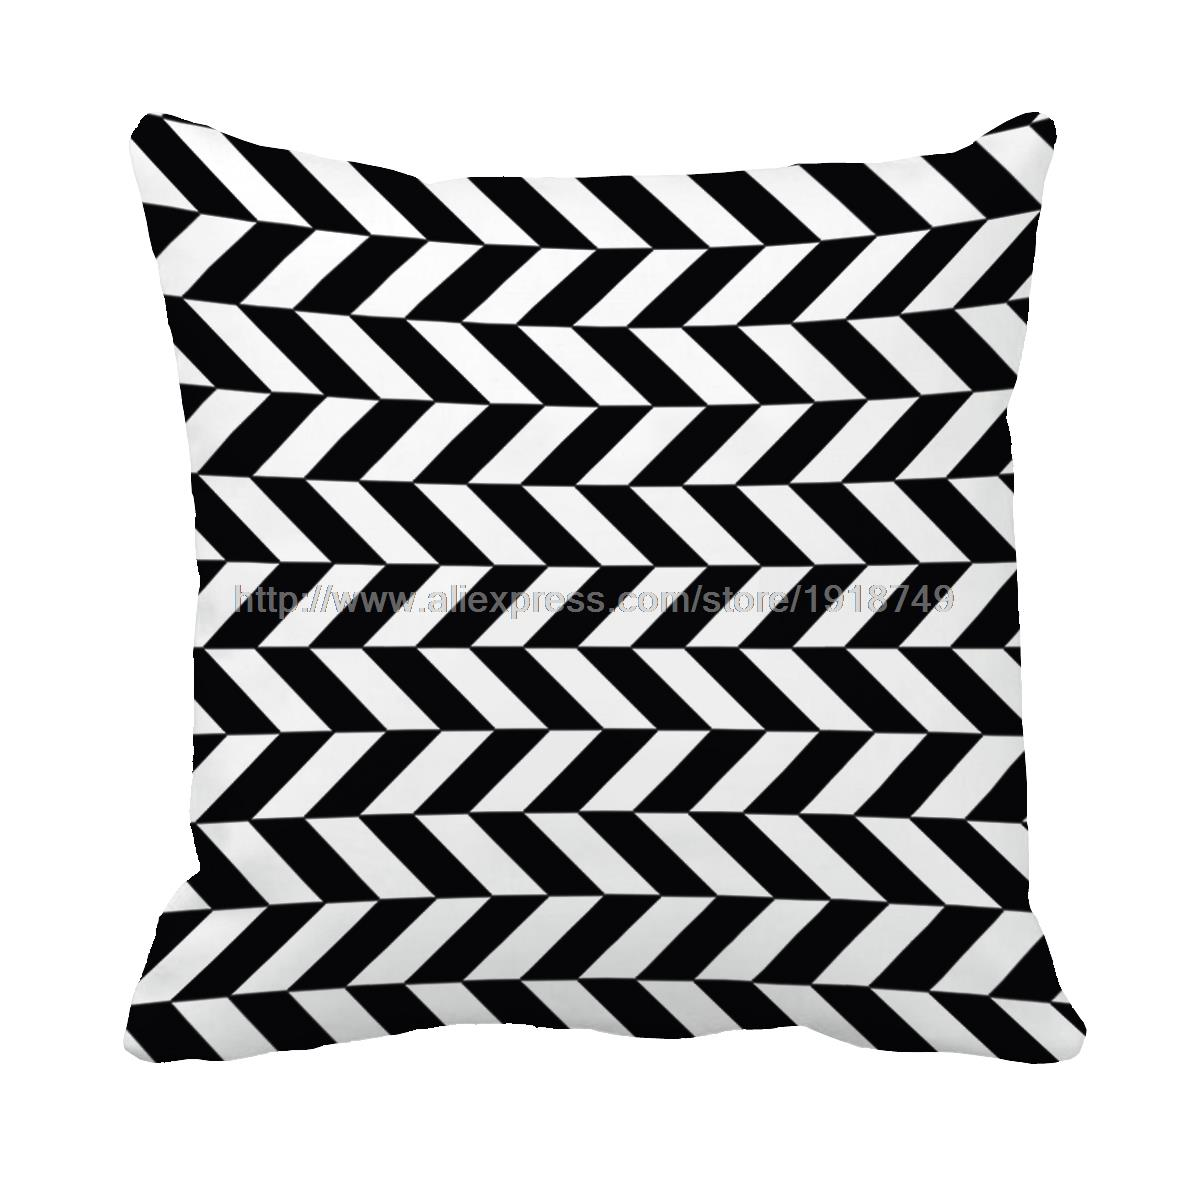 Black And White Geometric Throw Pillows : black and white rhombus printed decorative throw pillow case modernist geometric cushion covers ...